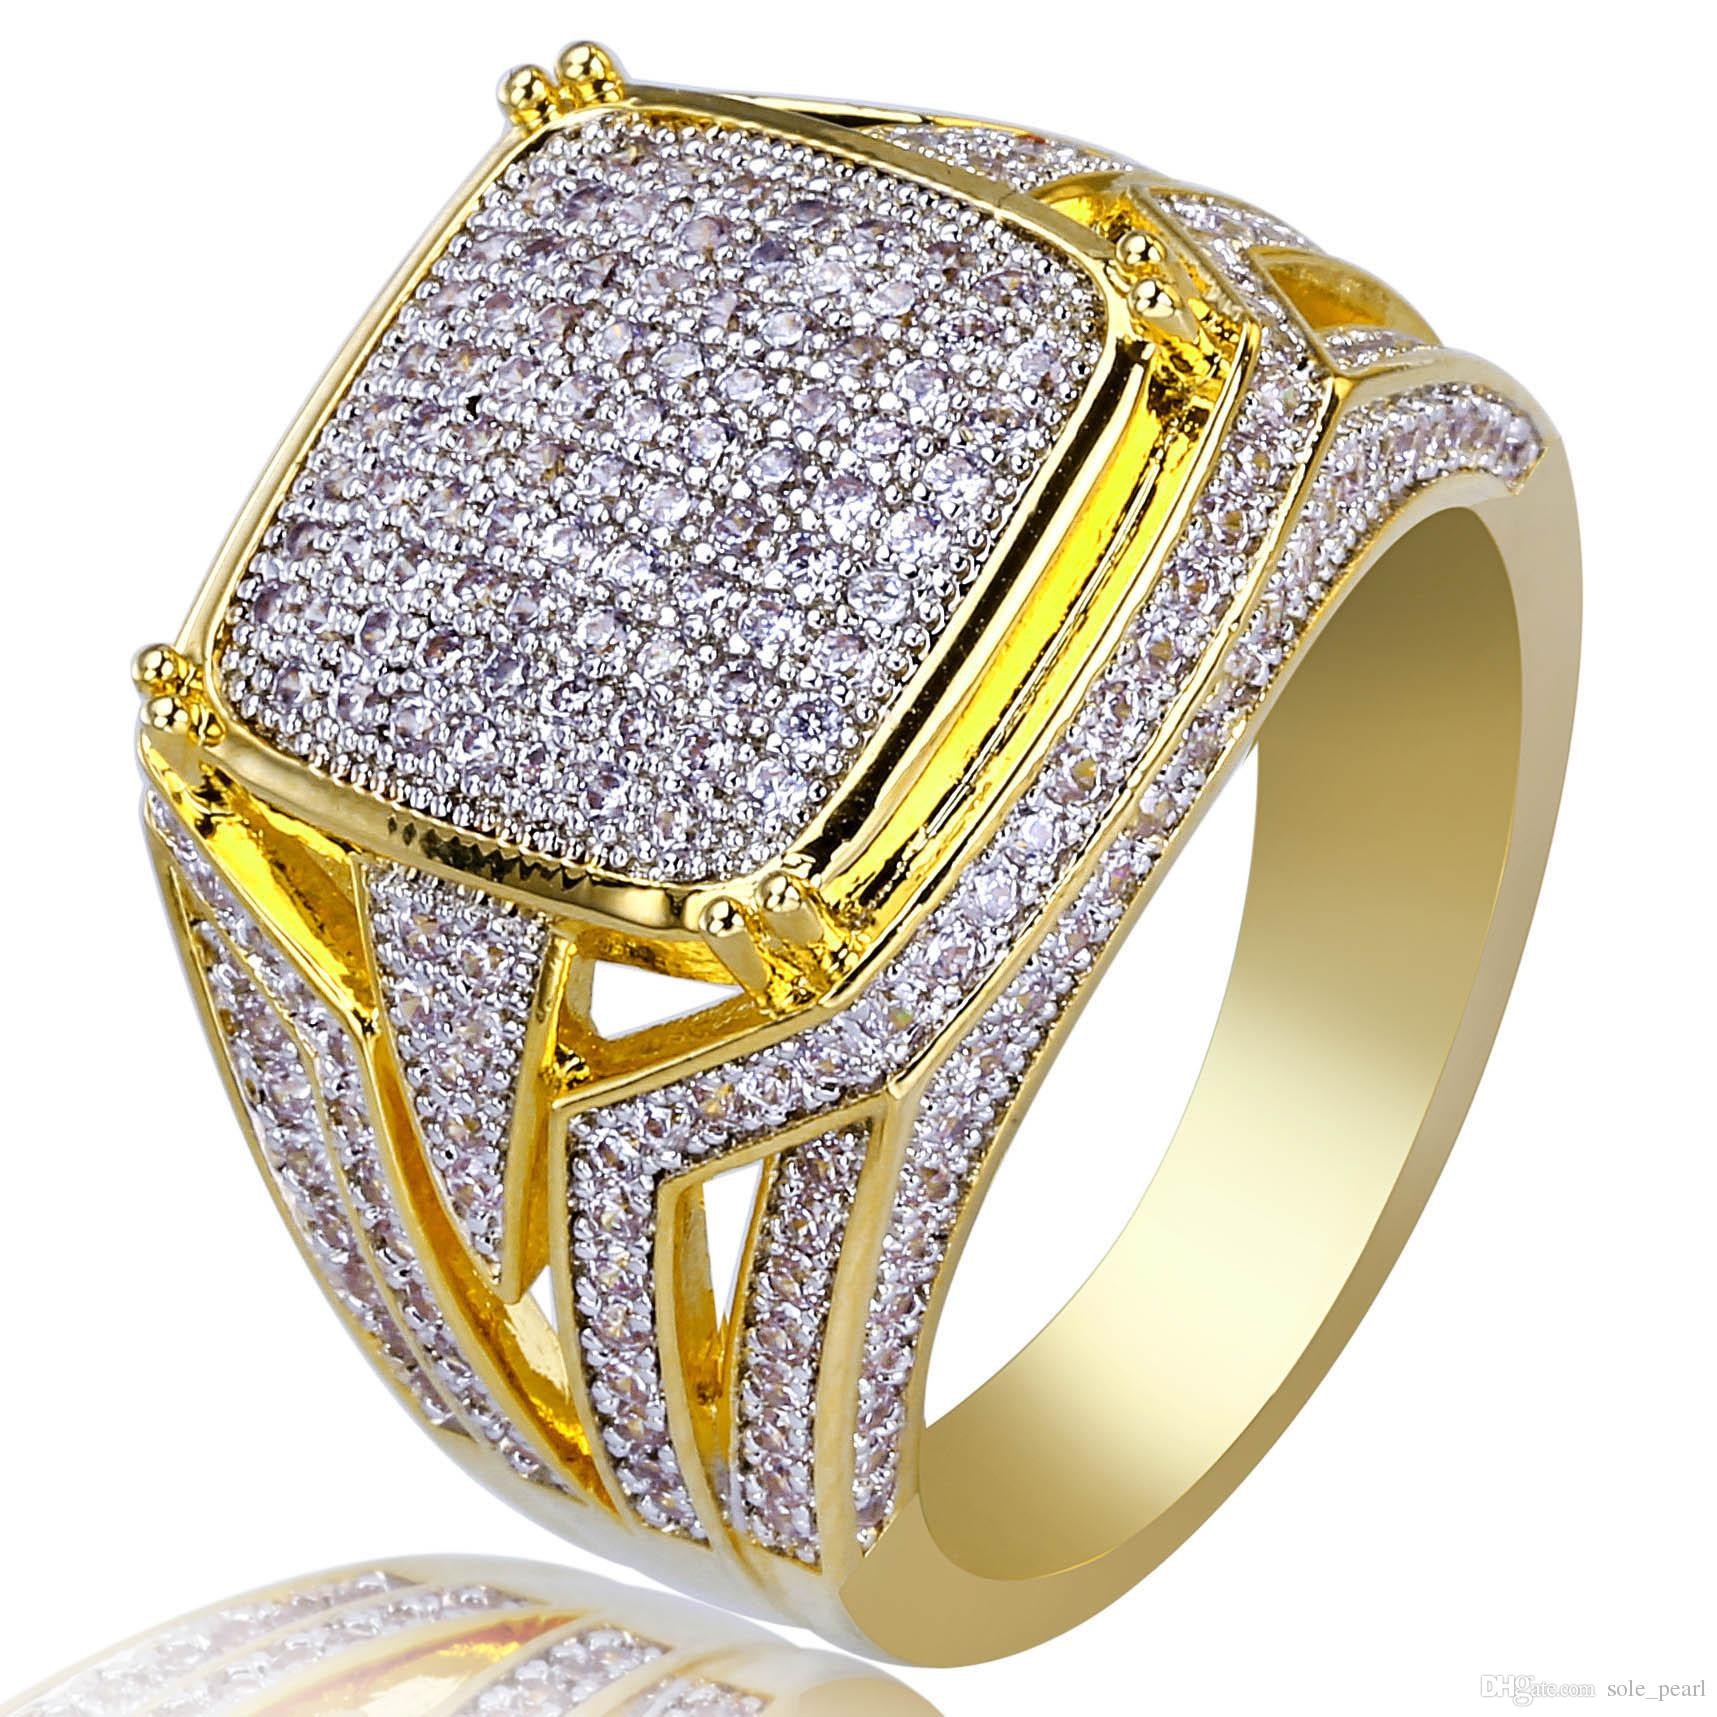 New Mens Ring Vintage Hip Hop Jewelry Zircon Iced Out